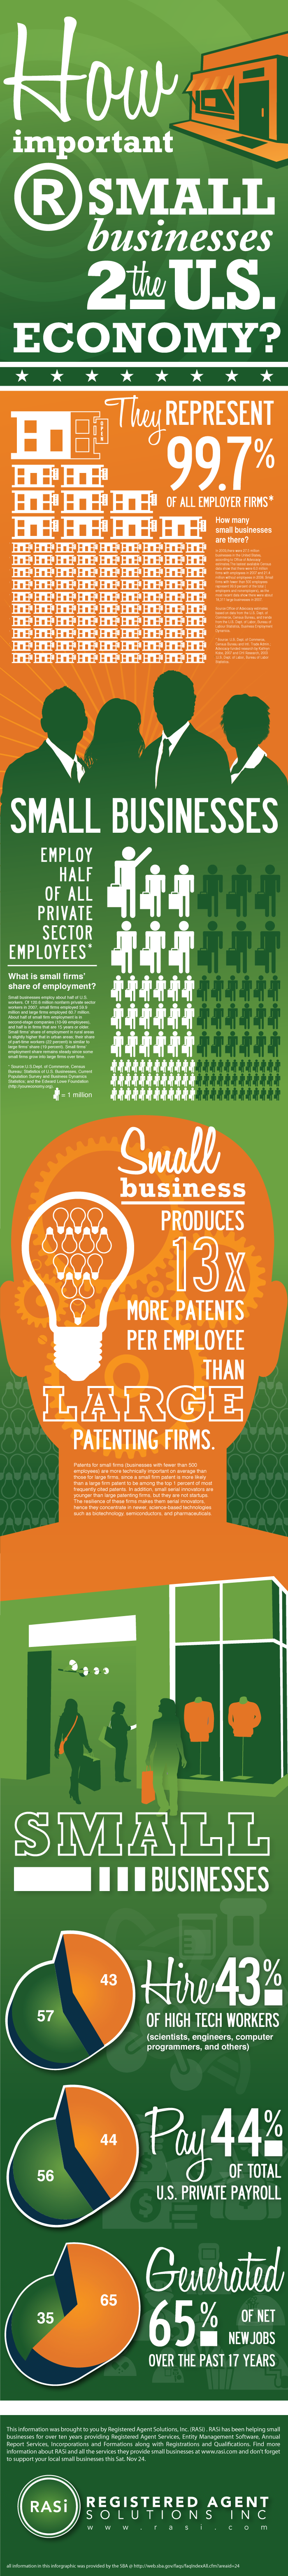 the importance of small businesses in the economy of maine The survey of maine small businesses with 2-49 survey finds maine small businesses shifted health care this is important to the entire state economy.